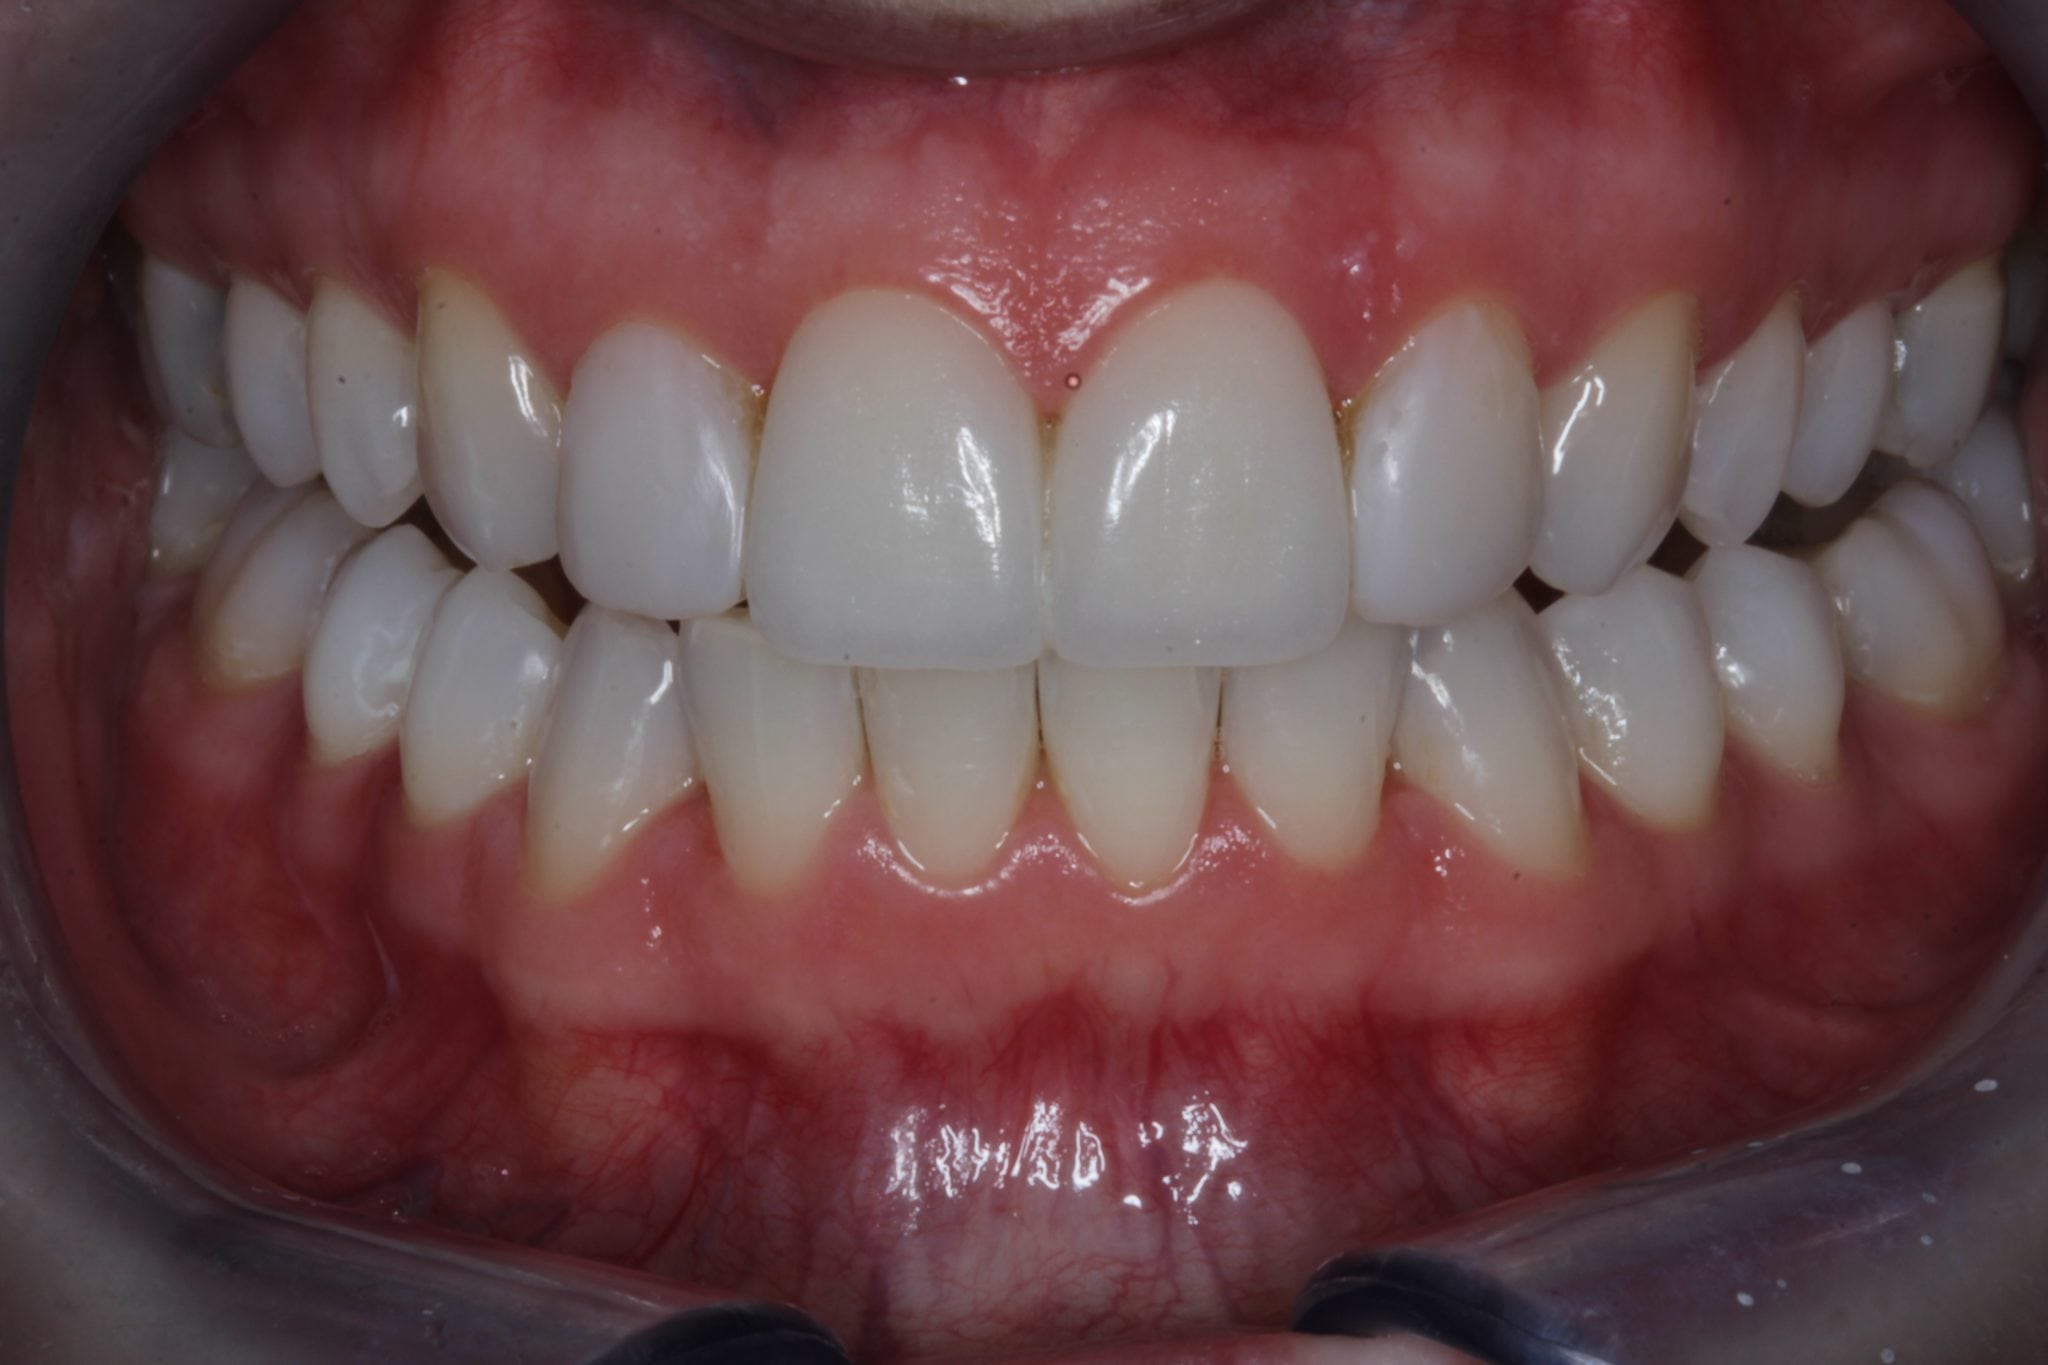 Porcelasin veneers and Dental bonding - after image